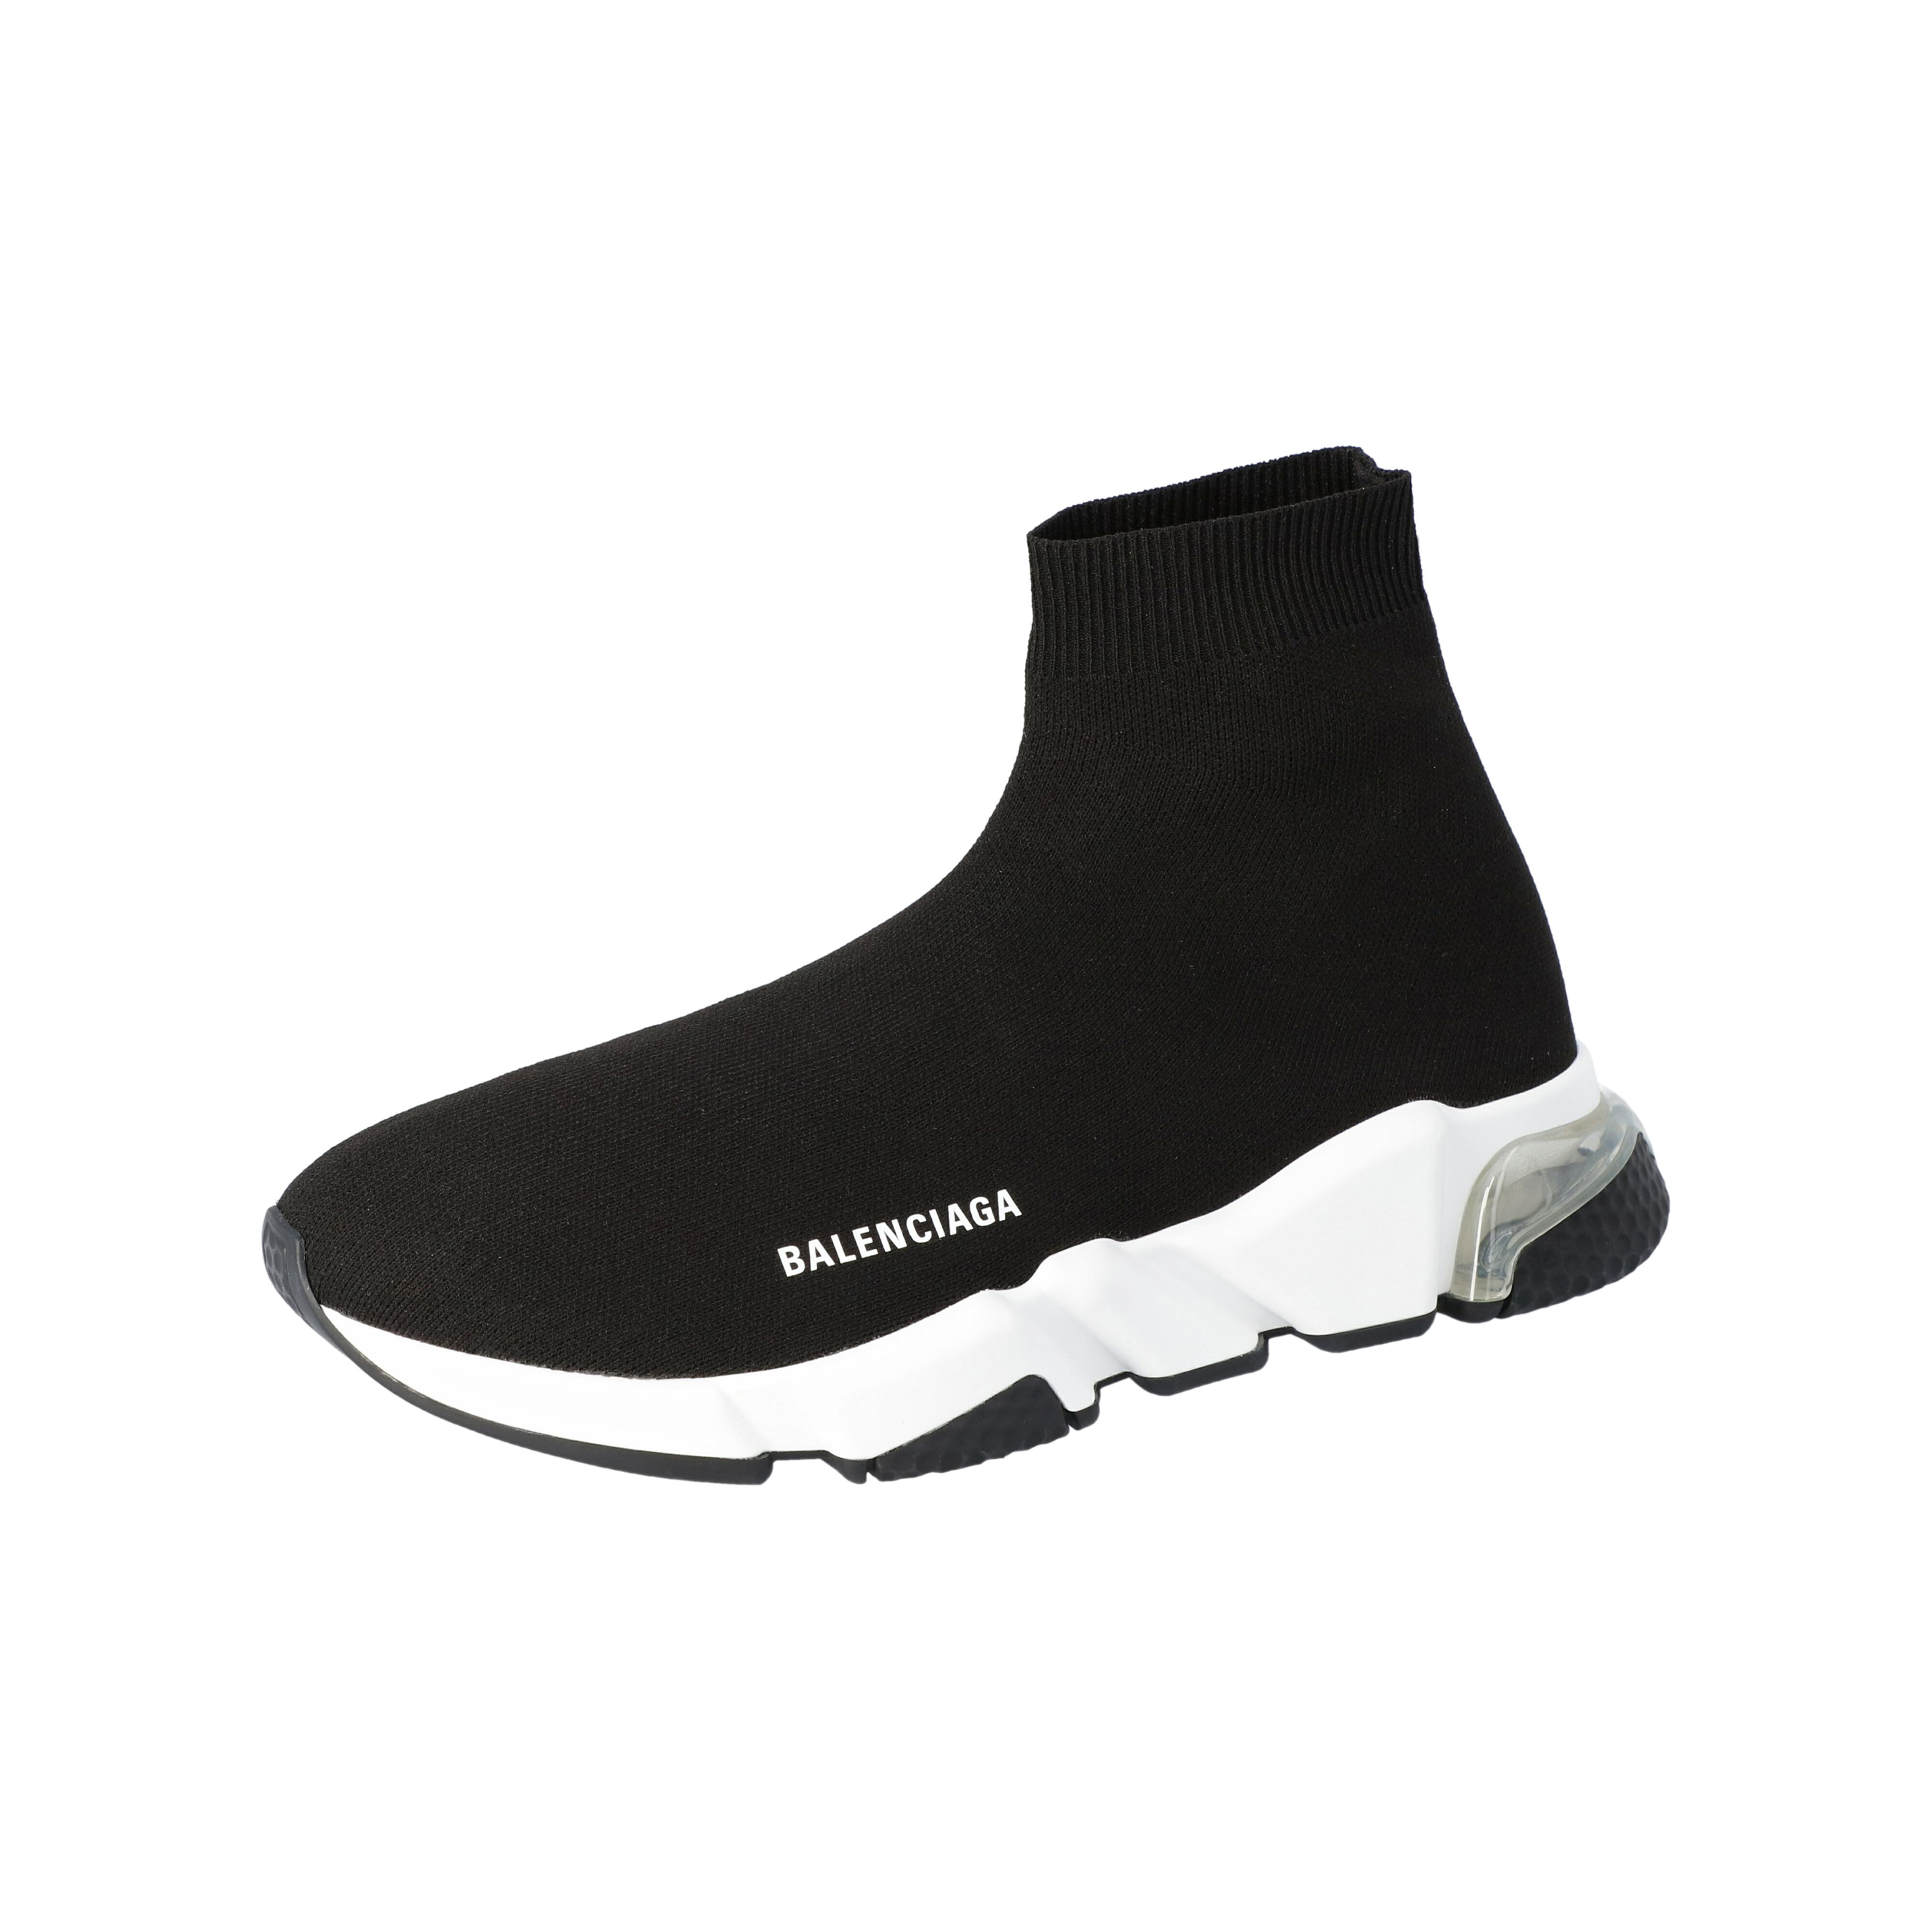 Balenciaga Black Knit Speed Clear Sole Sneakers Size 42